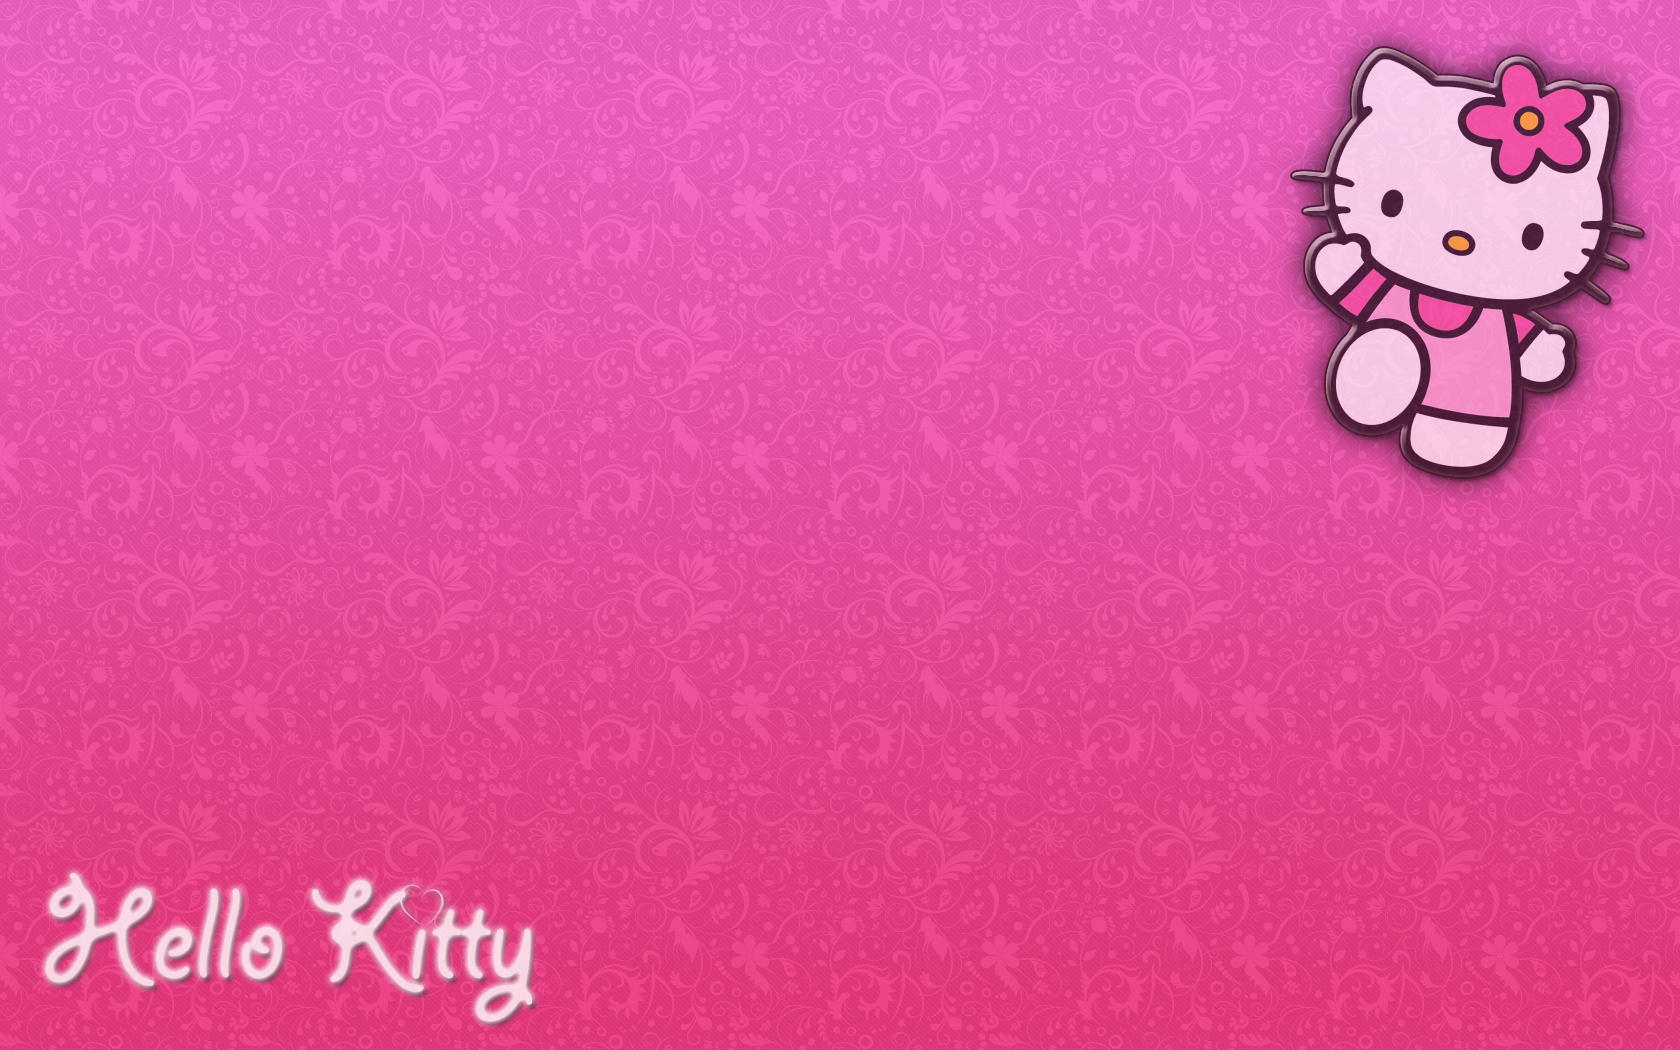 Hello Kitty Cute Backgrounds Wallpaper Wide For Desktop 1680x1050